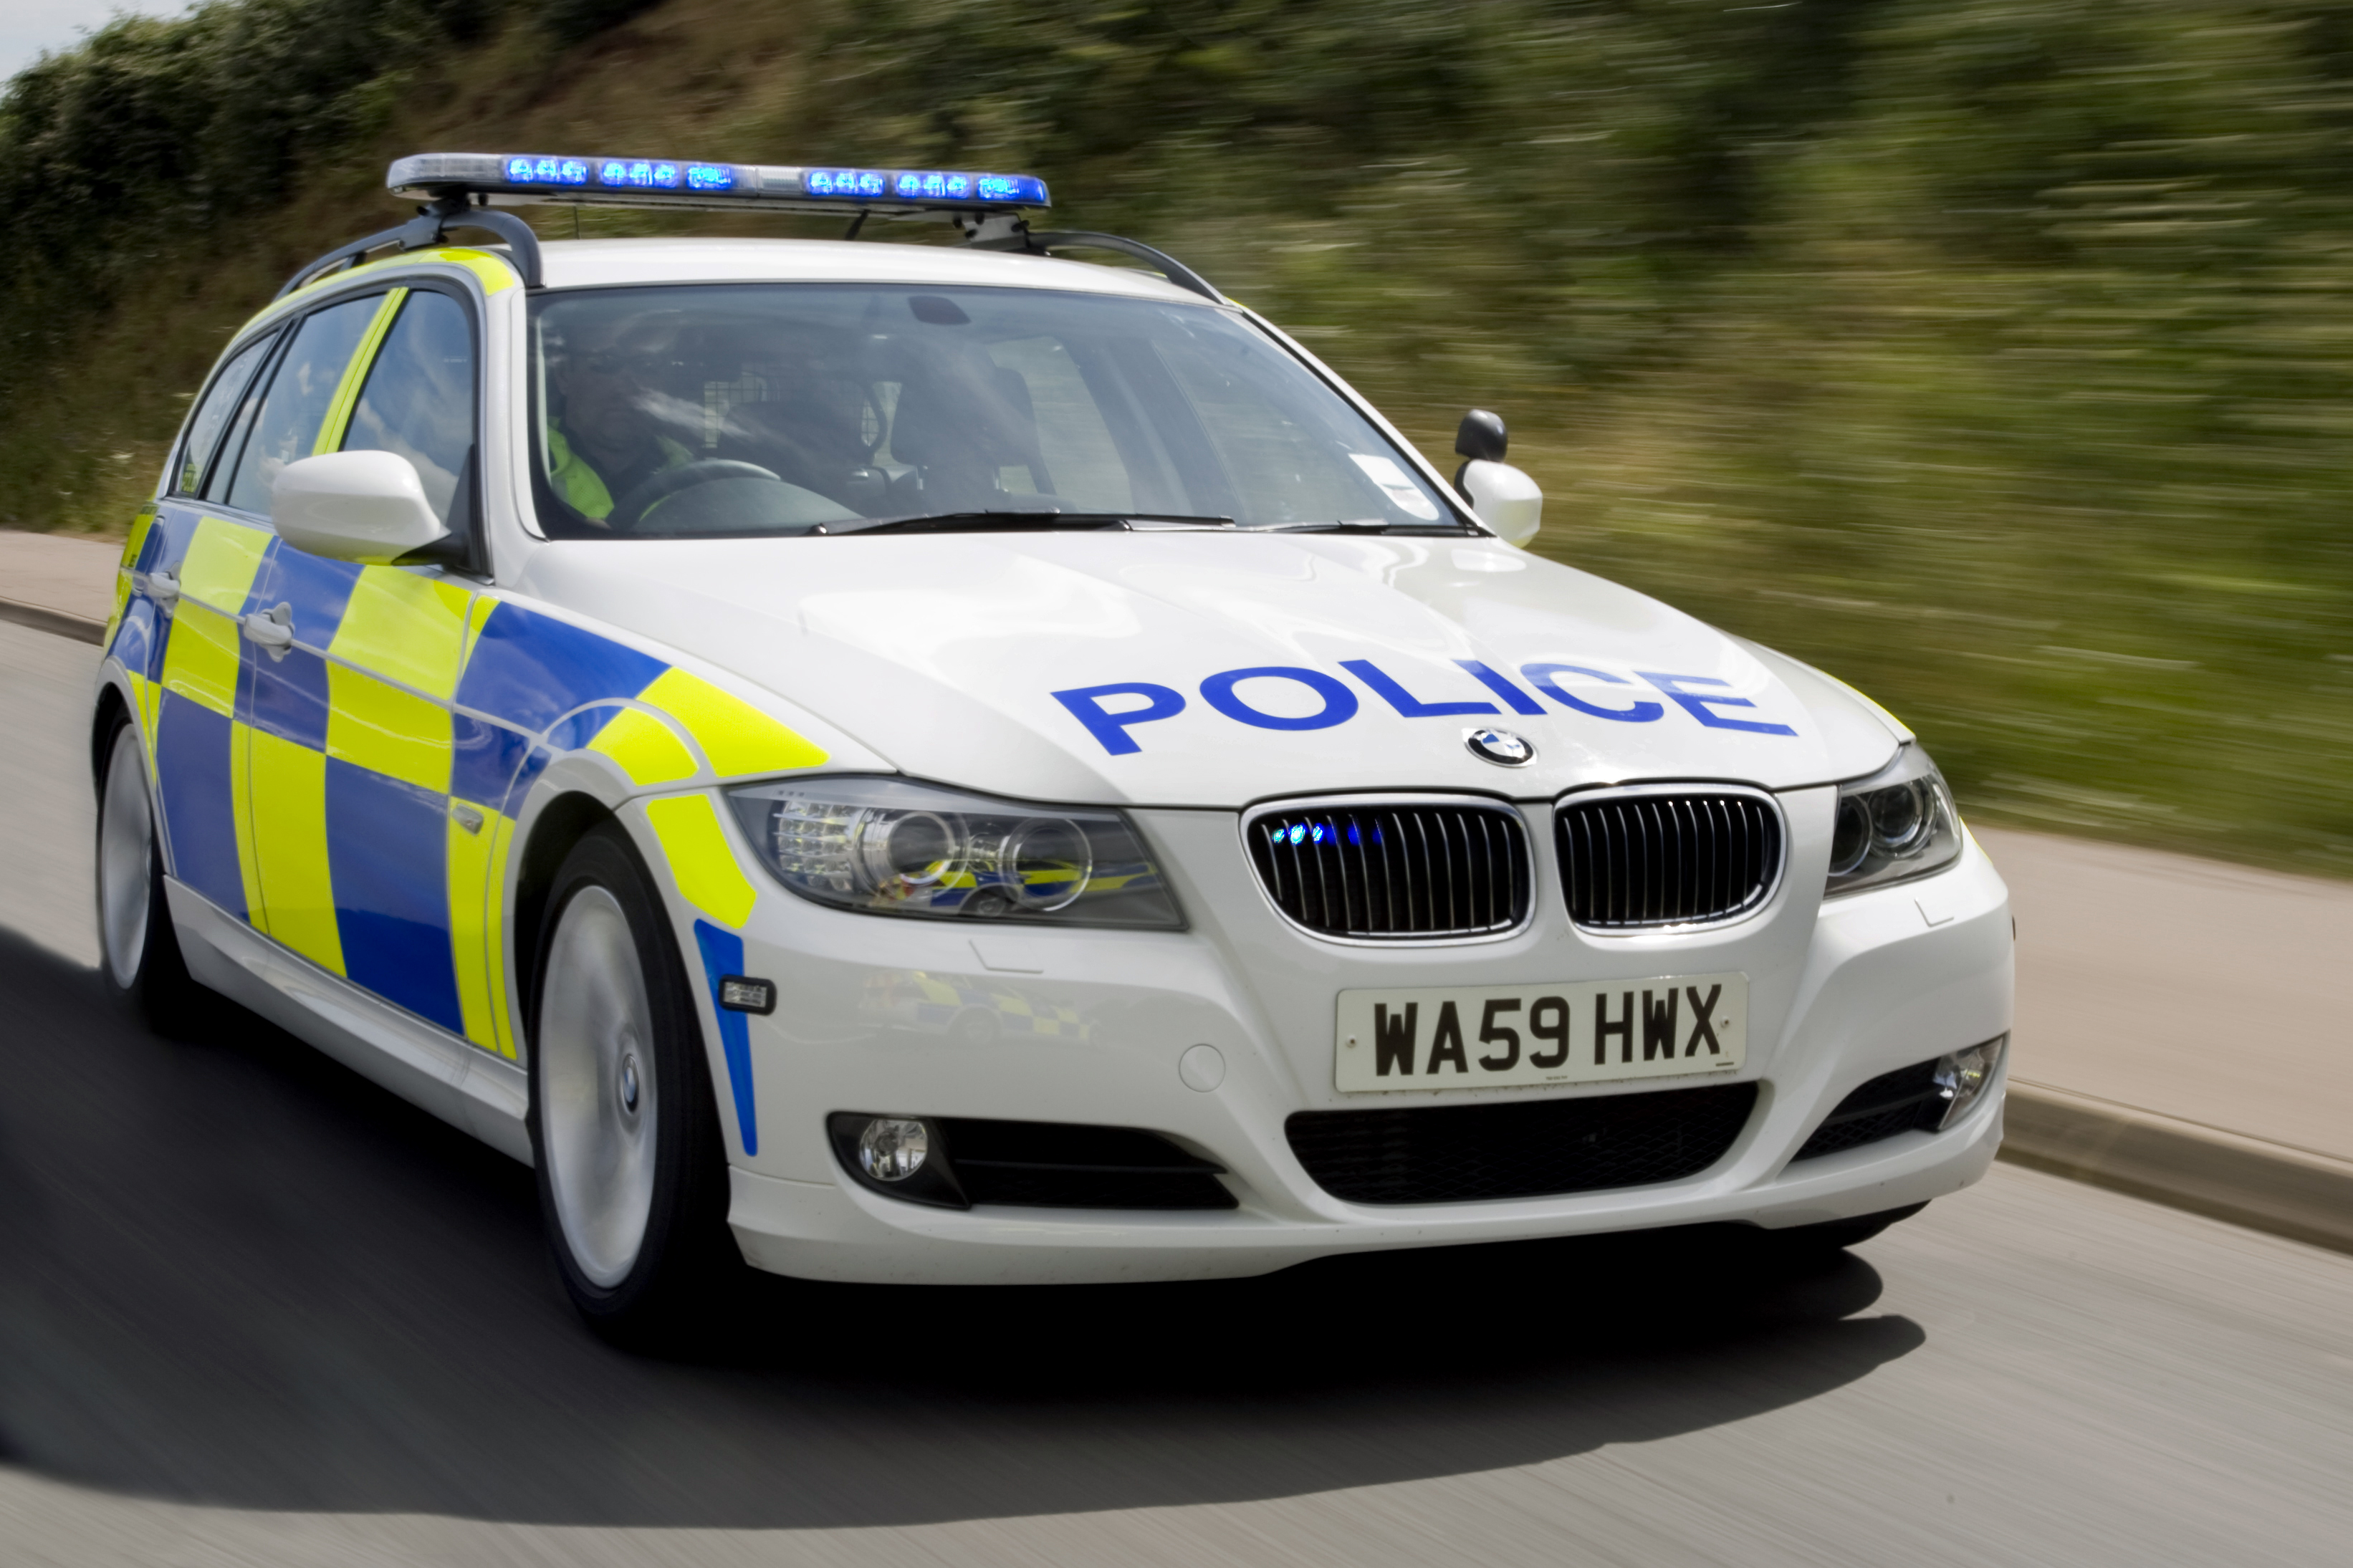 Police commissioners seek public views on road safety